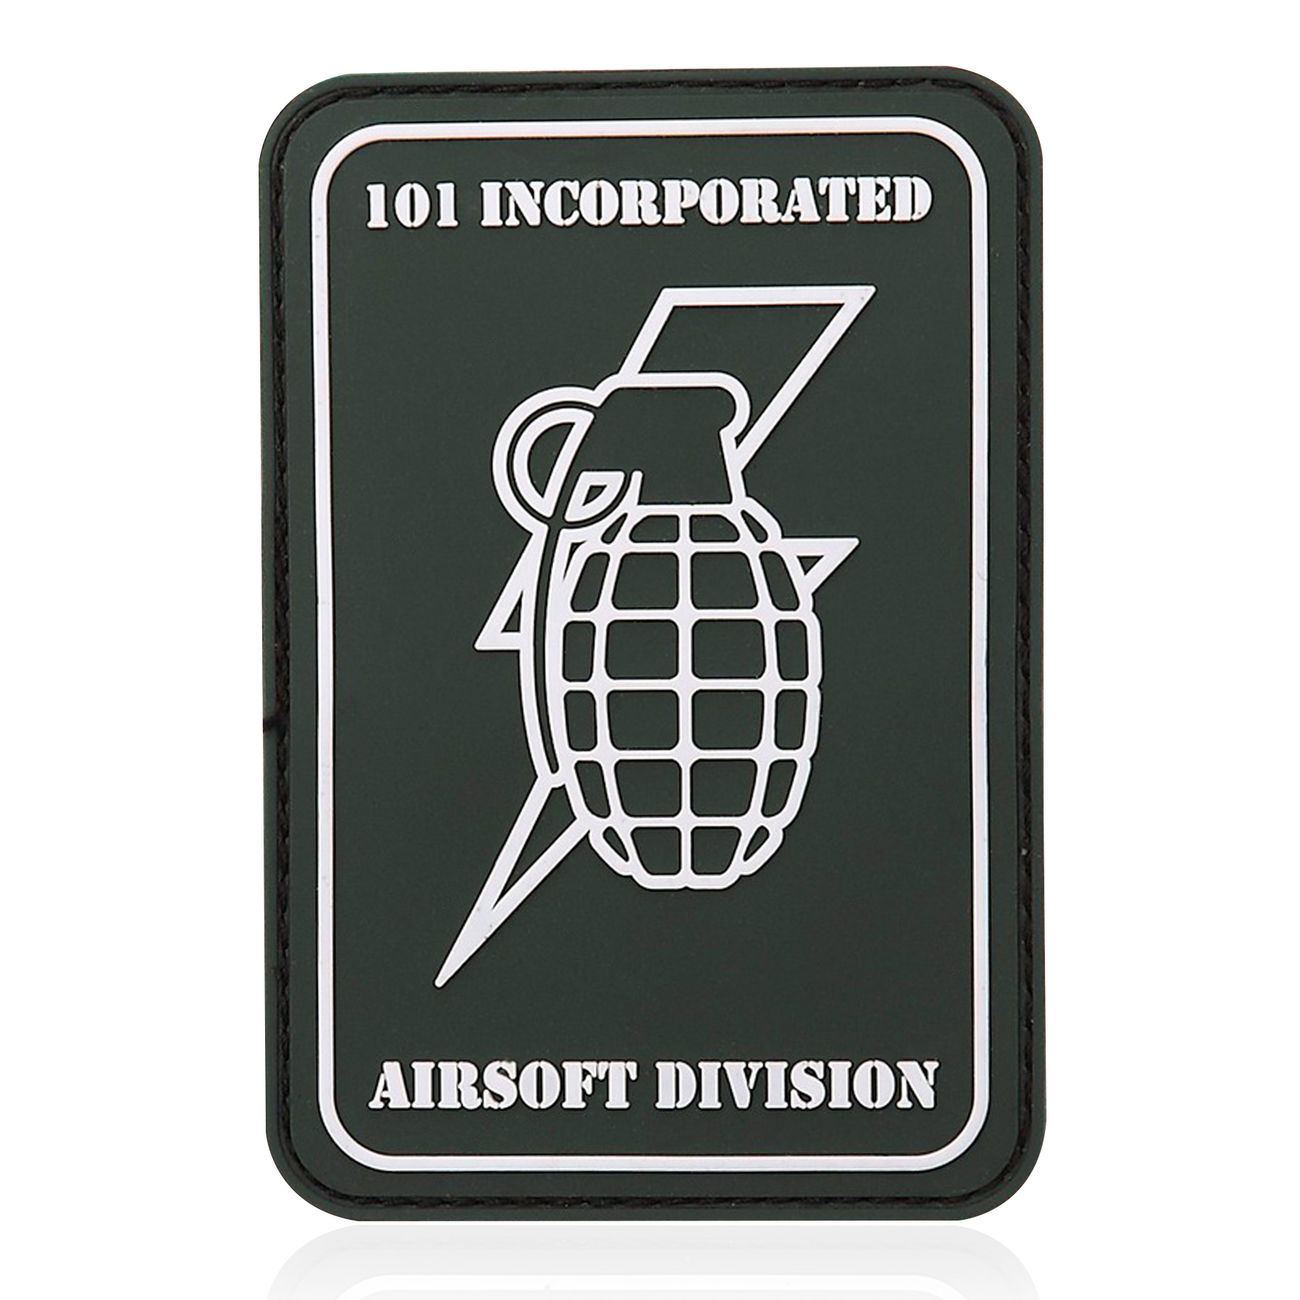 101 INC. 3D Rubber Patch Handgranate grün/weiß 0